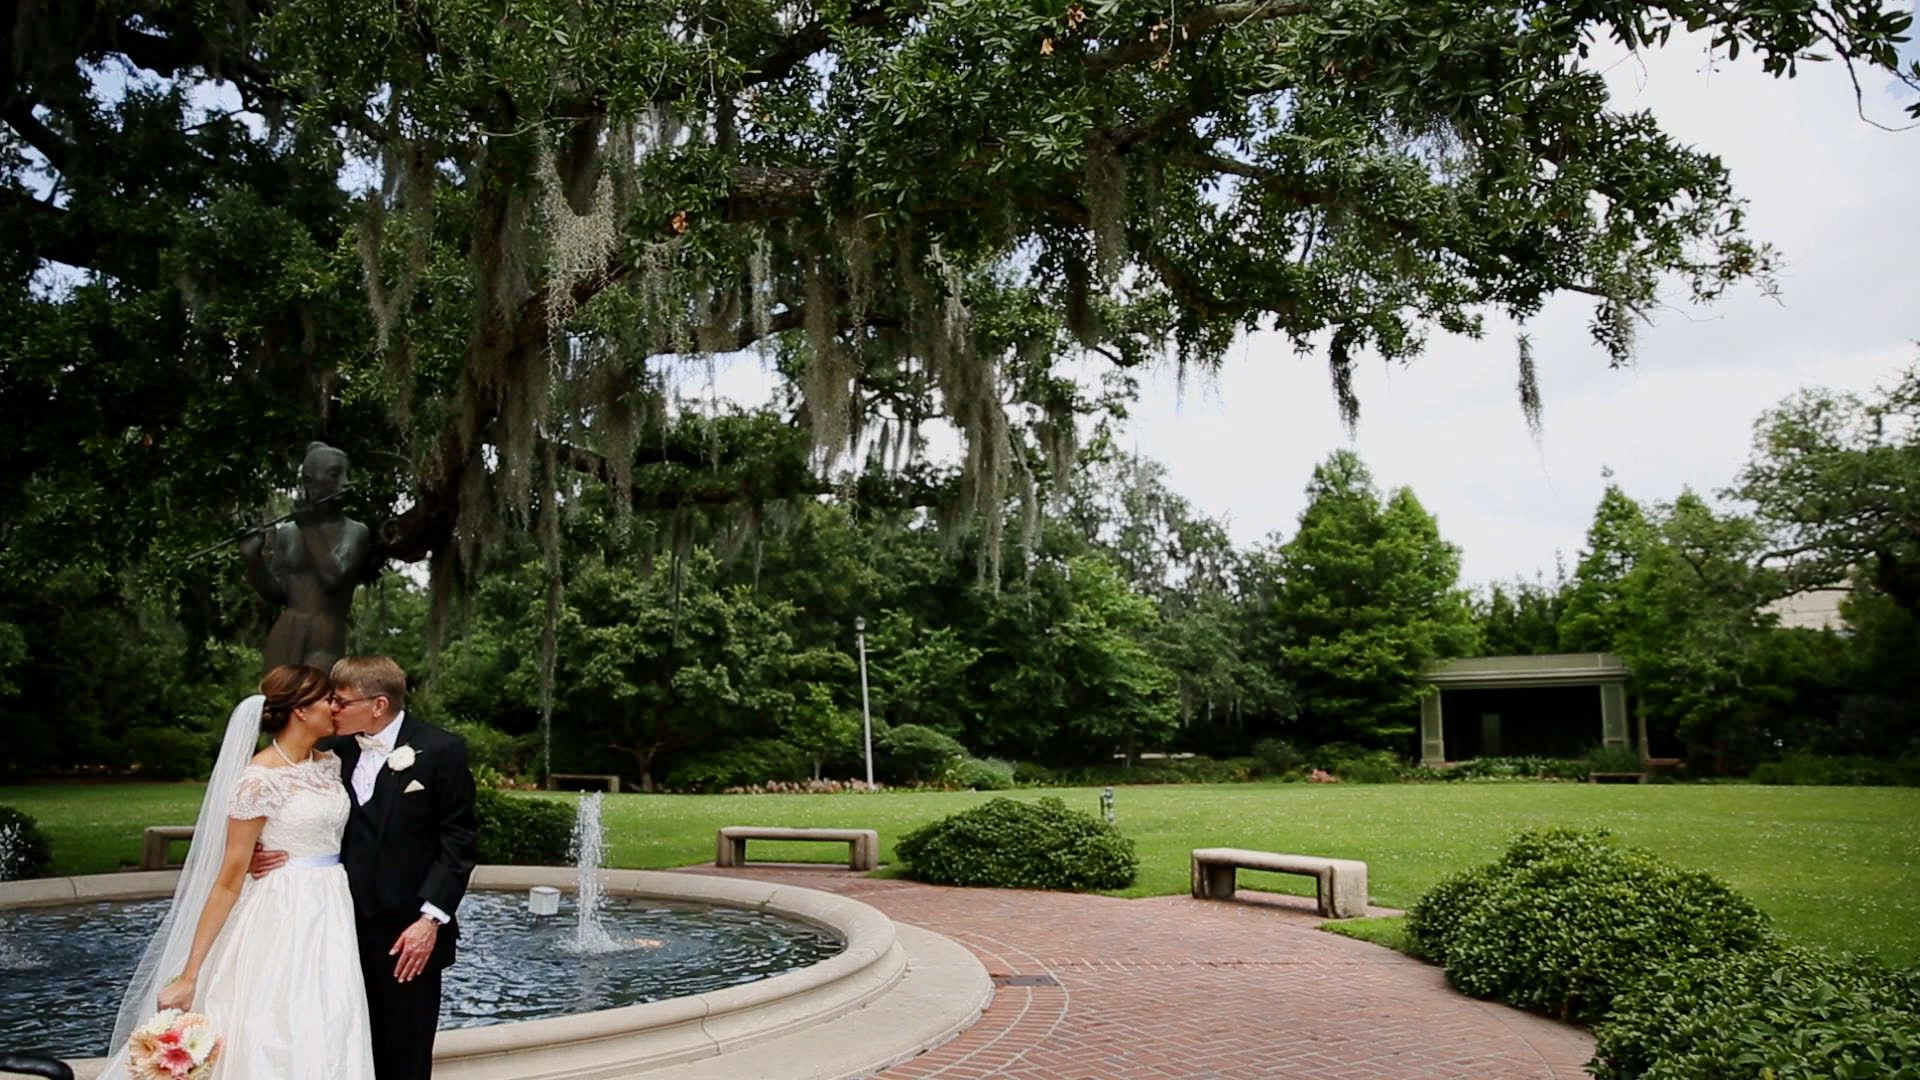 City Park always provides a tranquil setting for a beautiful wedding!